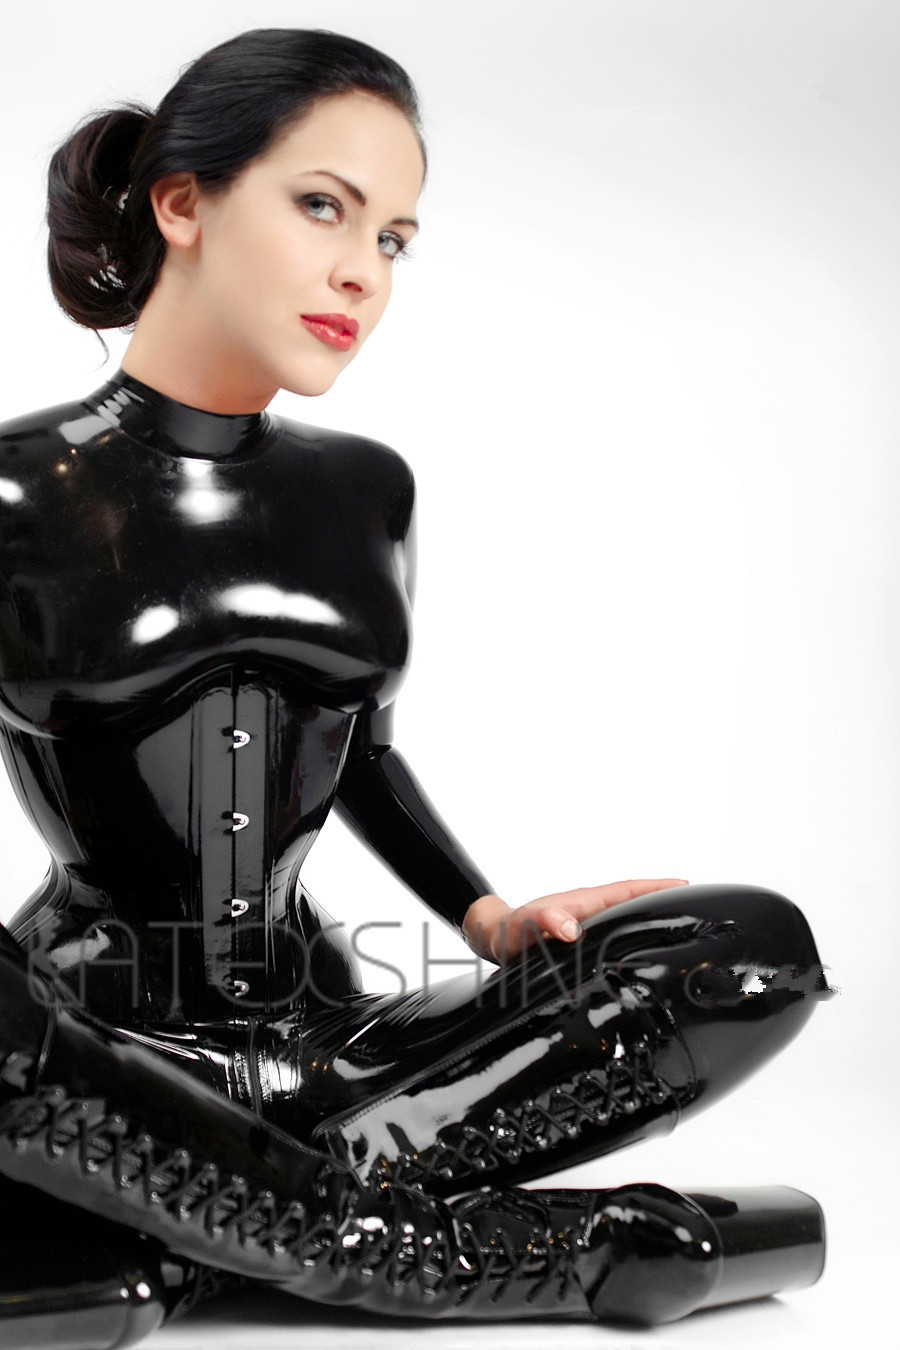 Black-Latex-Catsuit-Women-Full-Bodysuit-Leotard-Latex-Clothing-with-Black-Latex-Corset